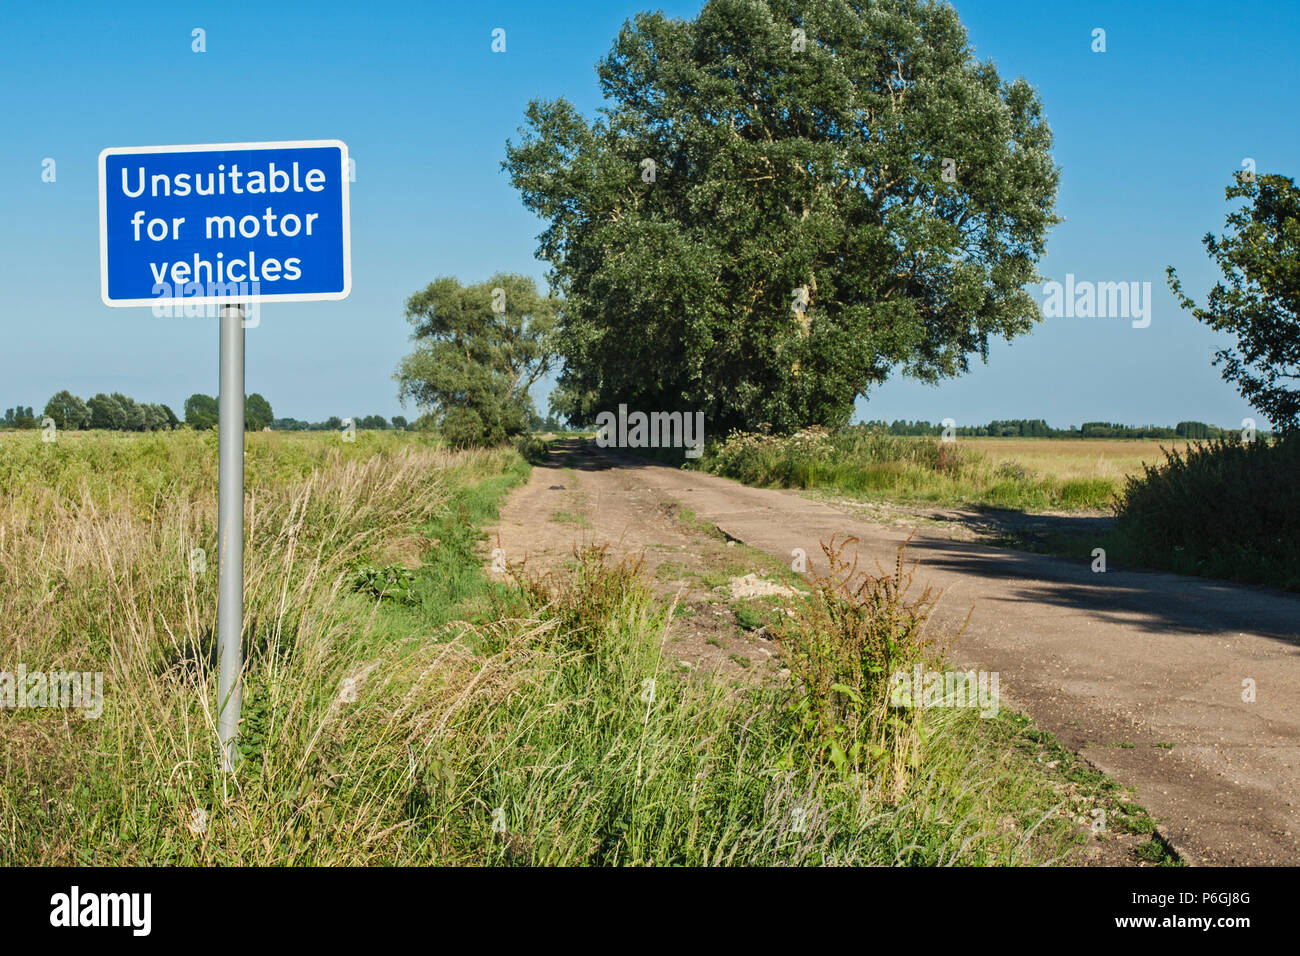 Unsuitable for motor vehicles sign on the edge of a drove, near Aldreth, Cambridgeshire - Stock Image